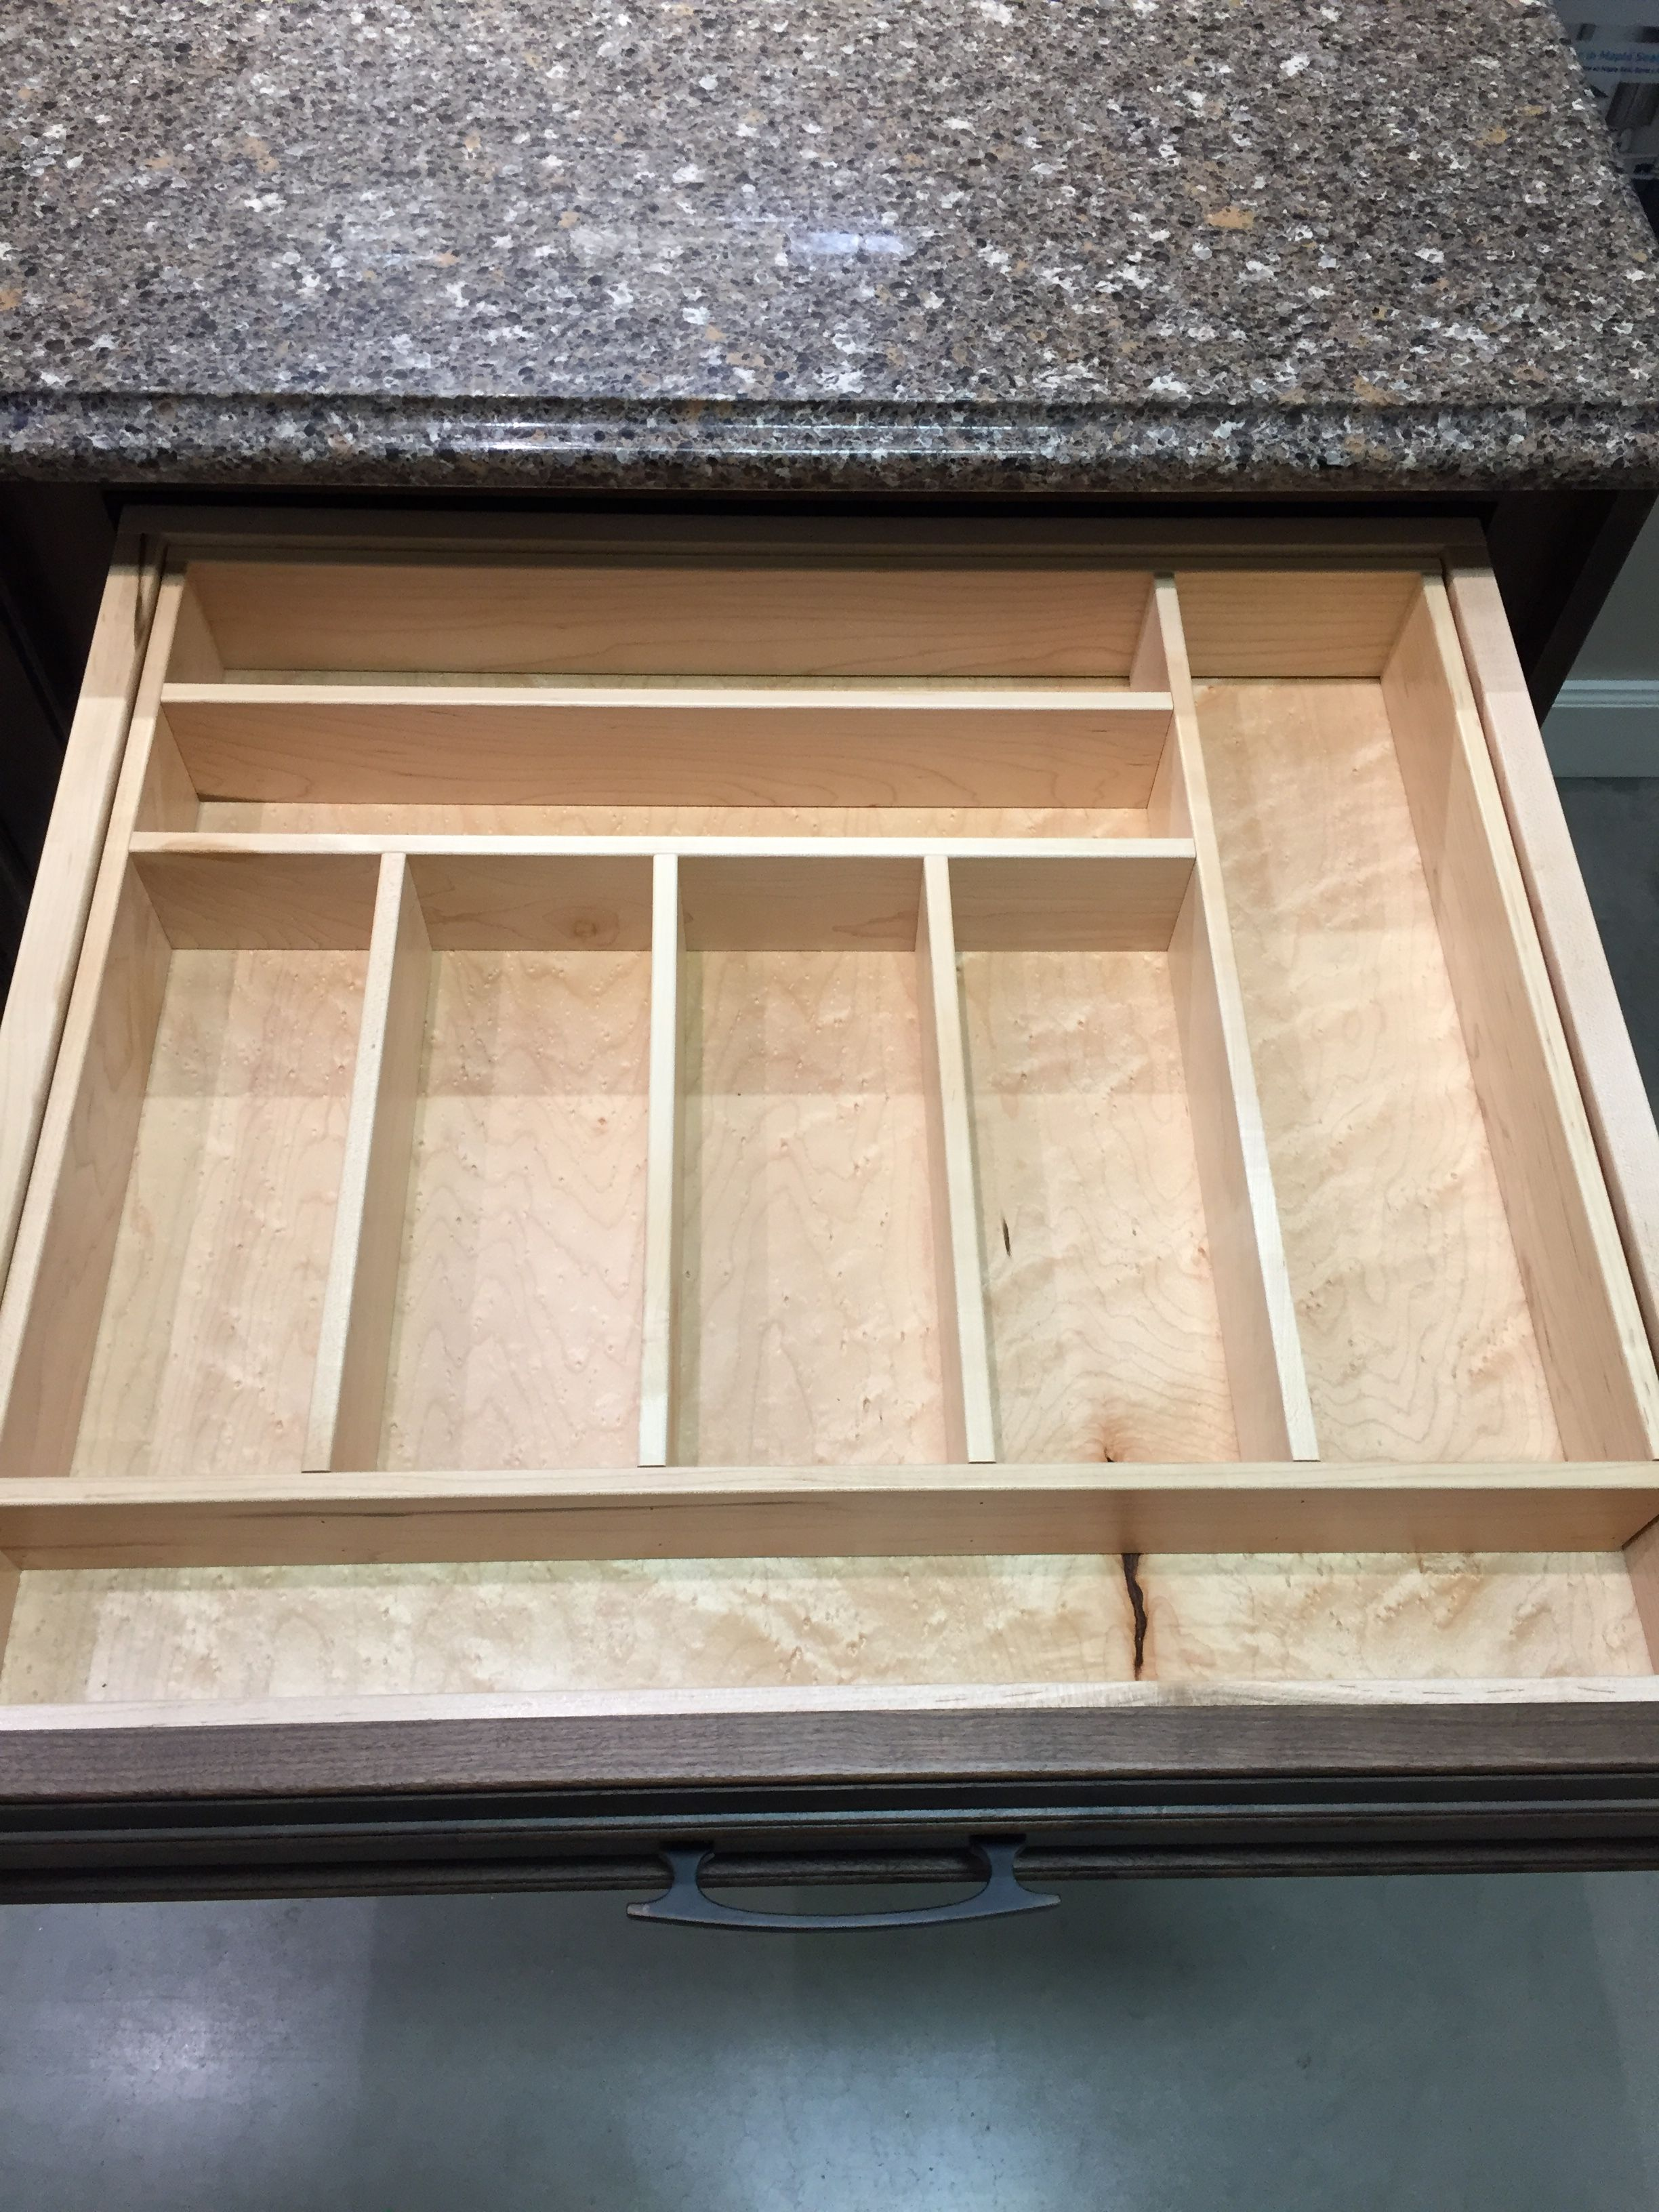 Pin By Robin Lowe On Kitchen Cabinet Organization Kitchen Cabinet Organization Cabinet Organization Kitchen Cabinets